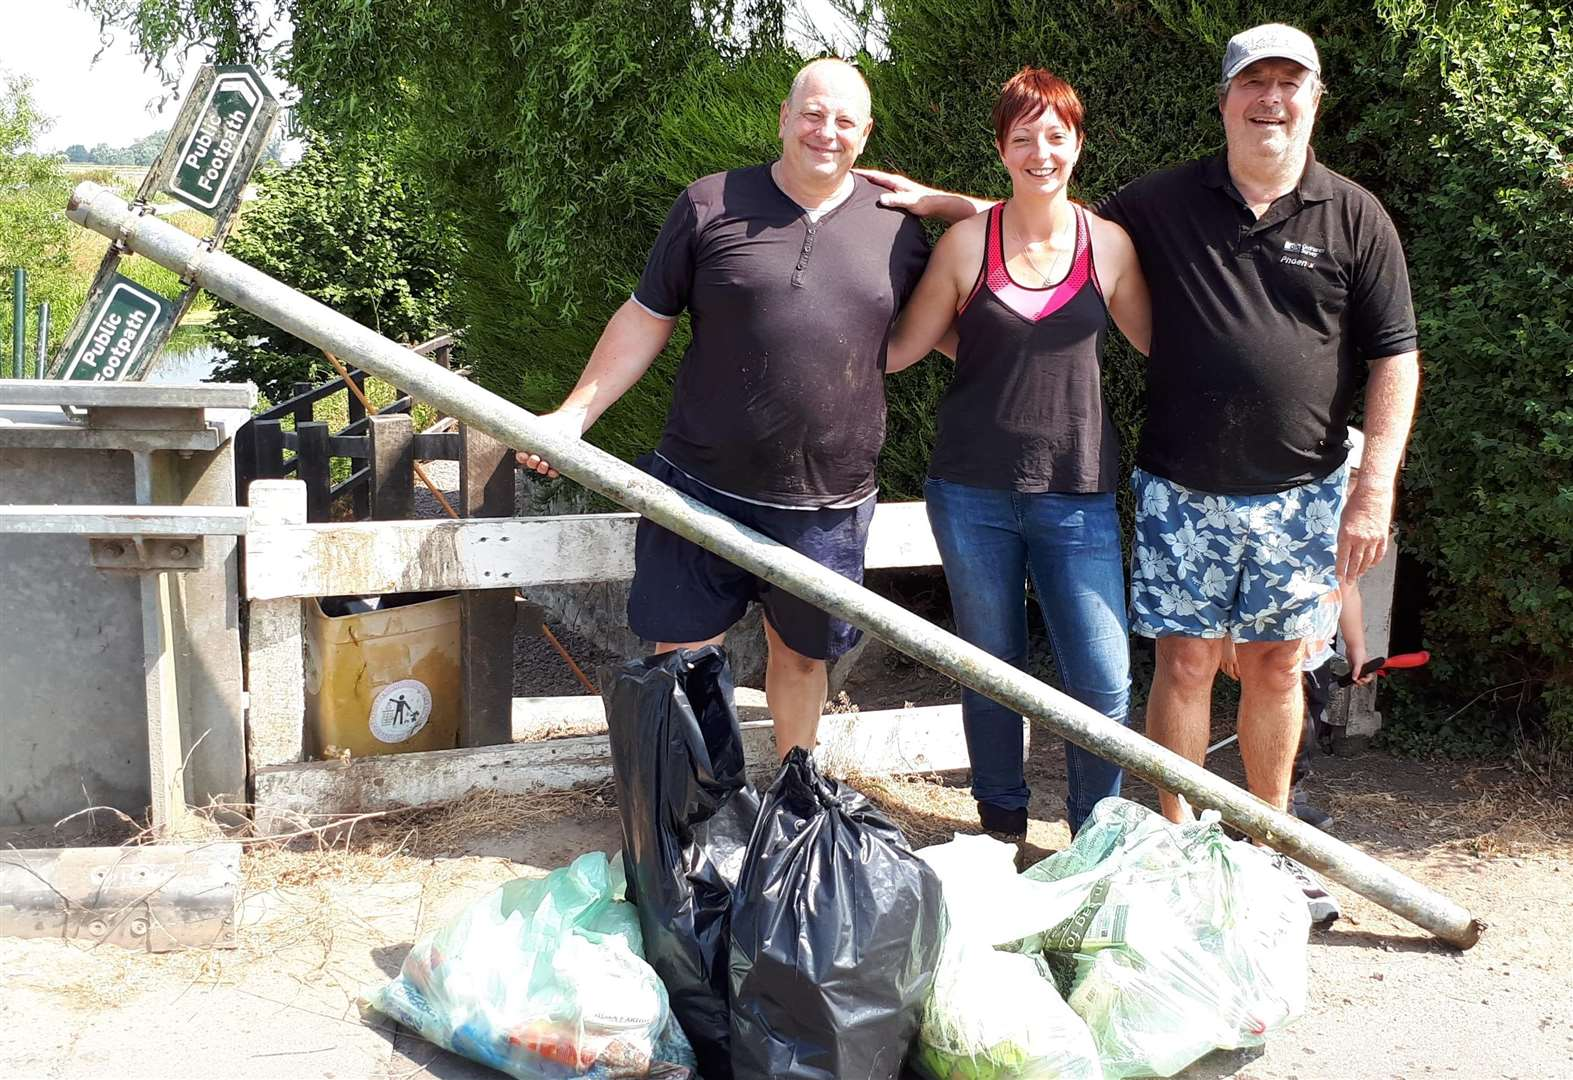 Volunteers wade into Pinchbeck river to clear rubbish